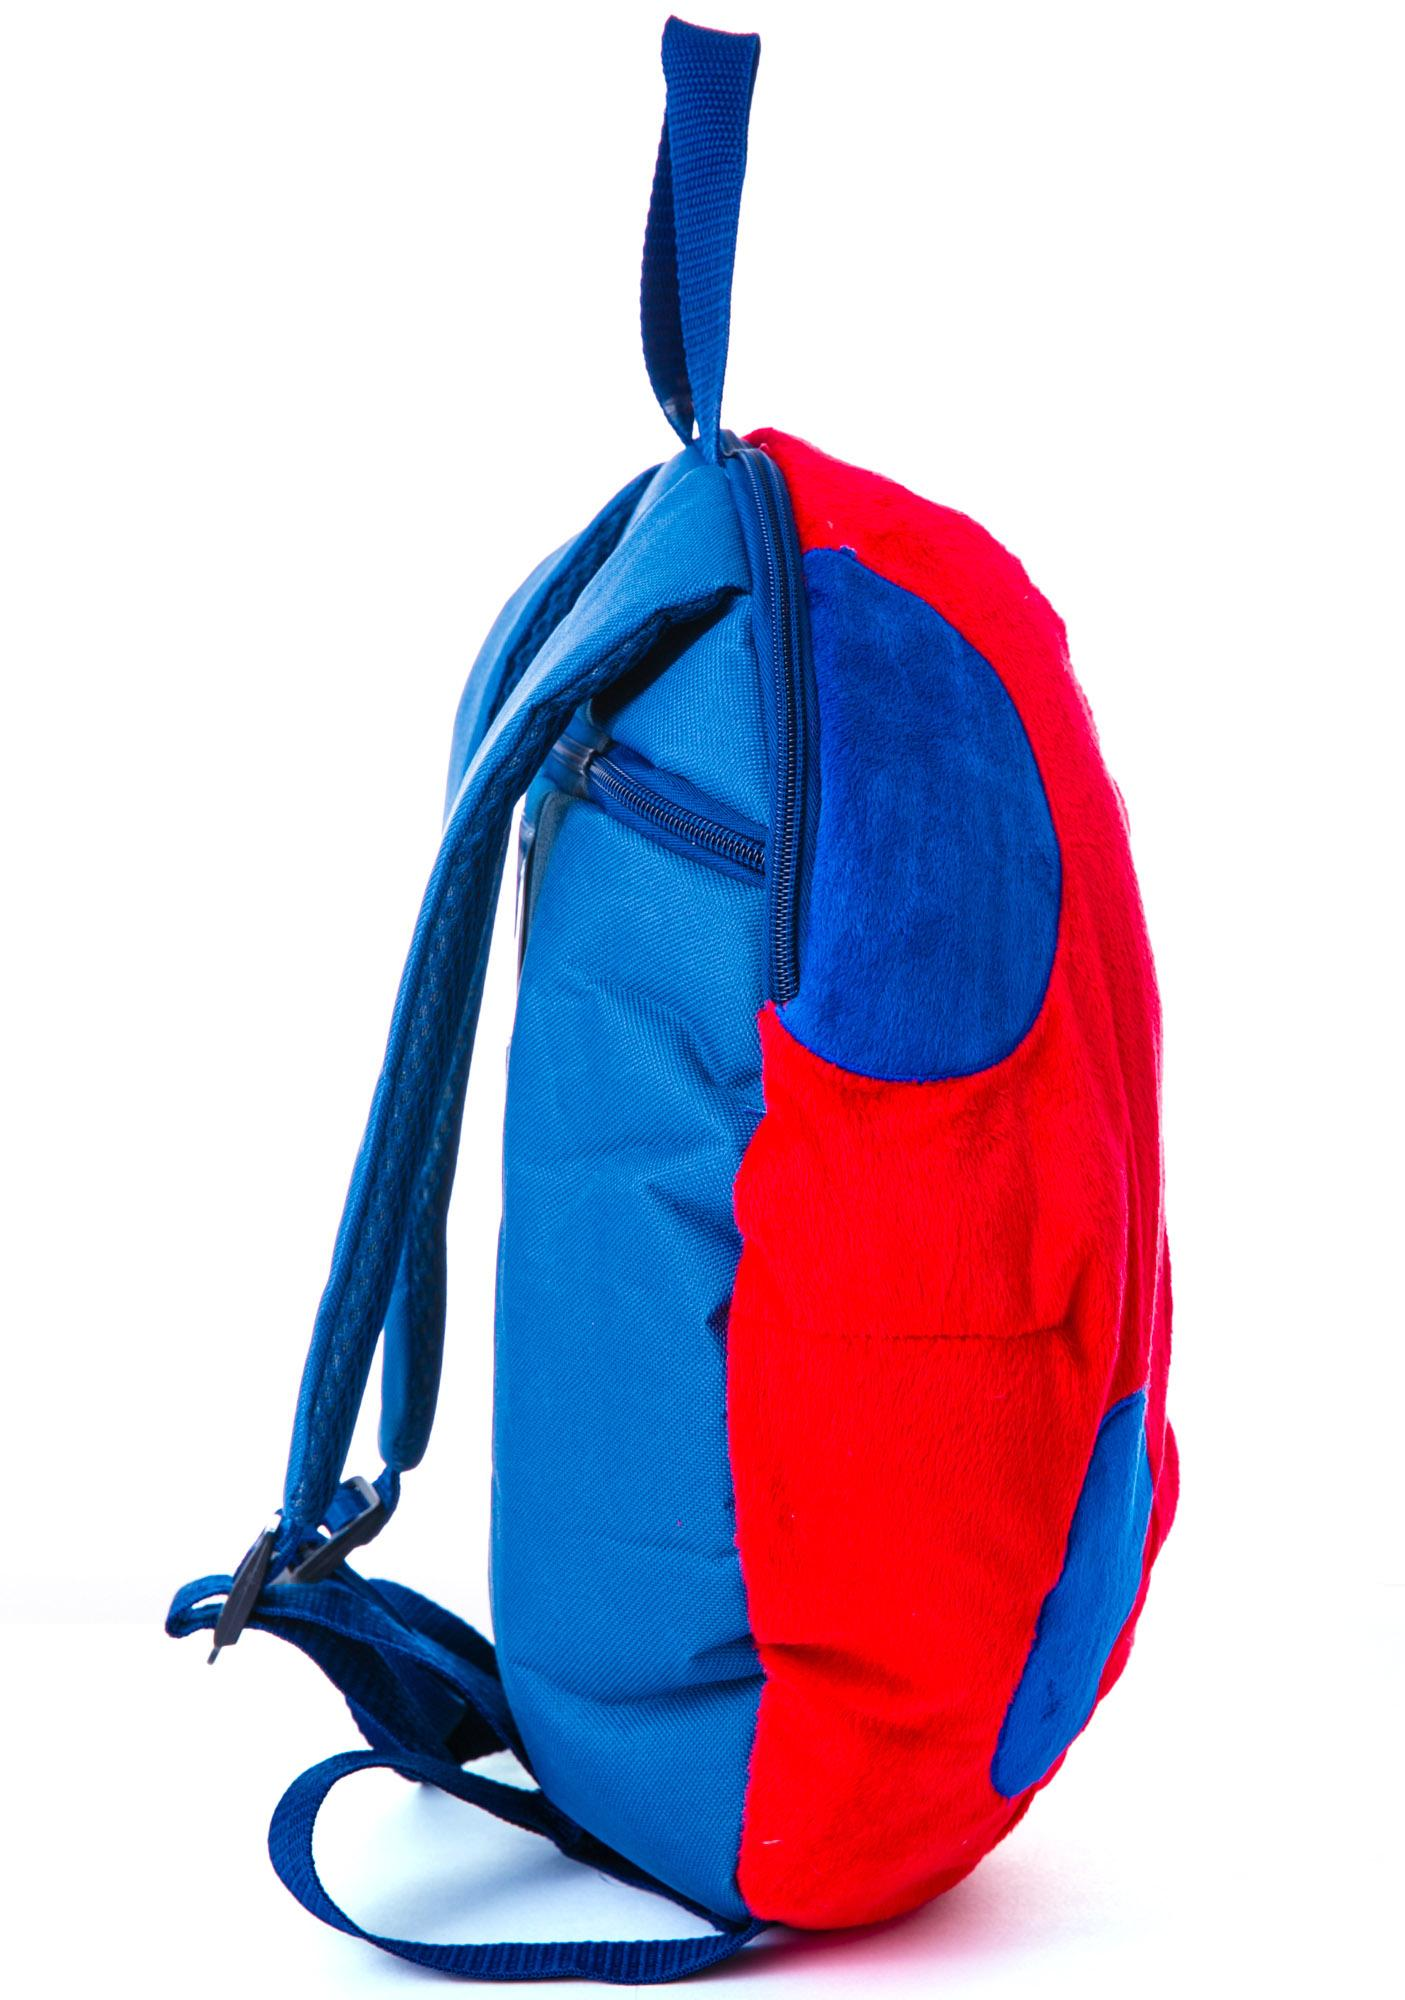 Catbug Hooded Backpack